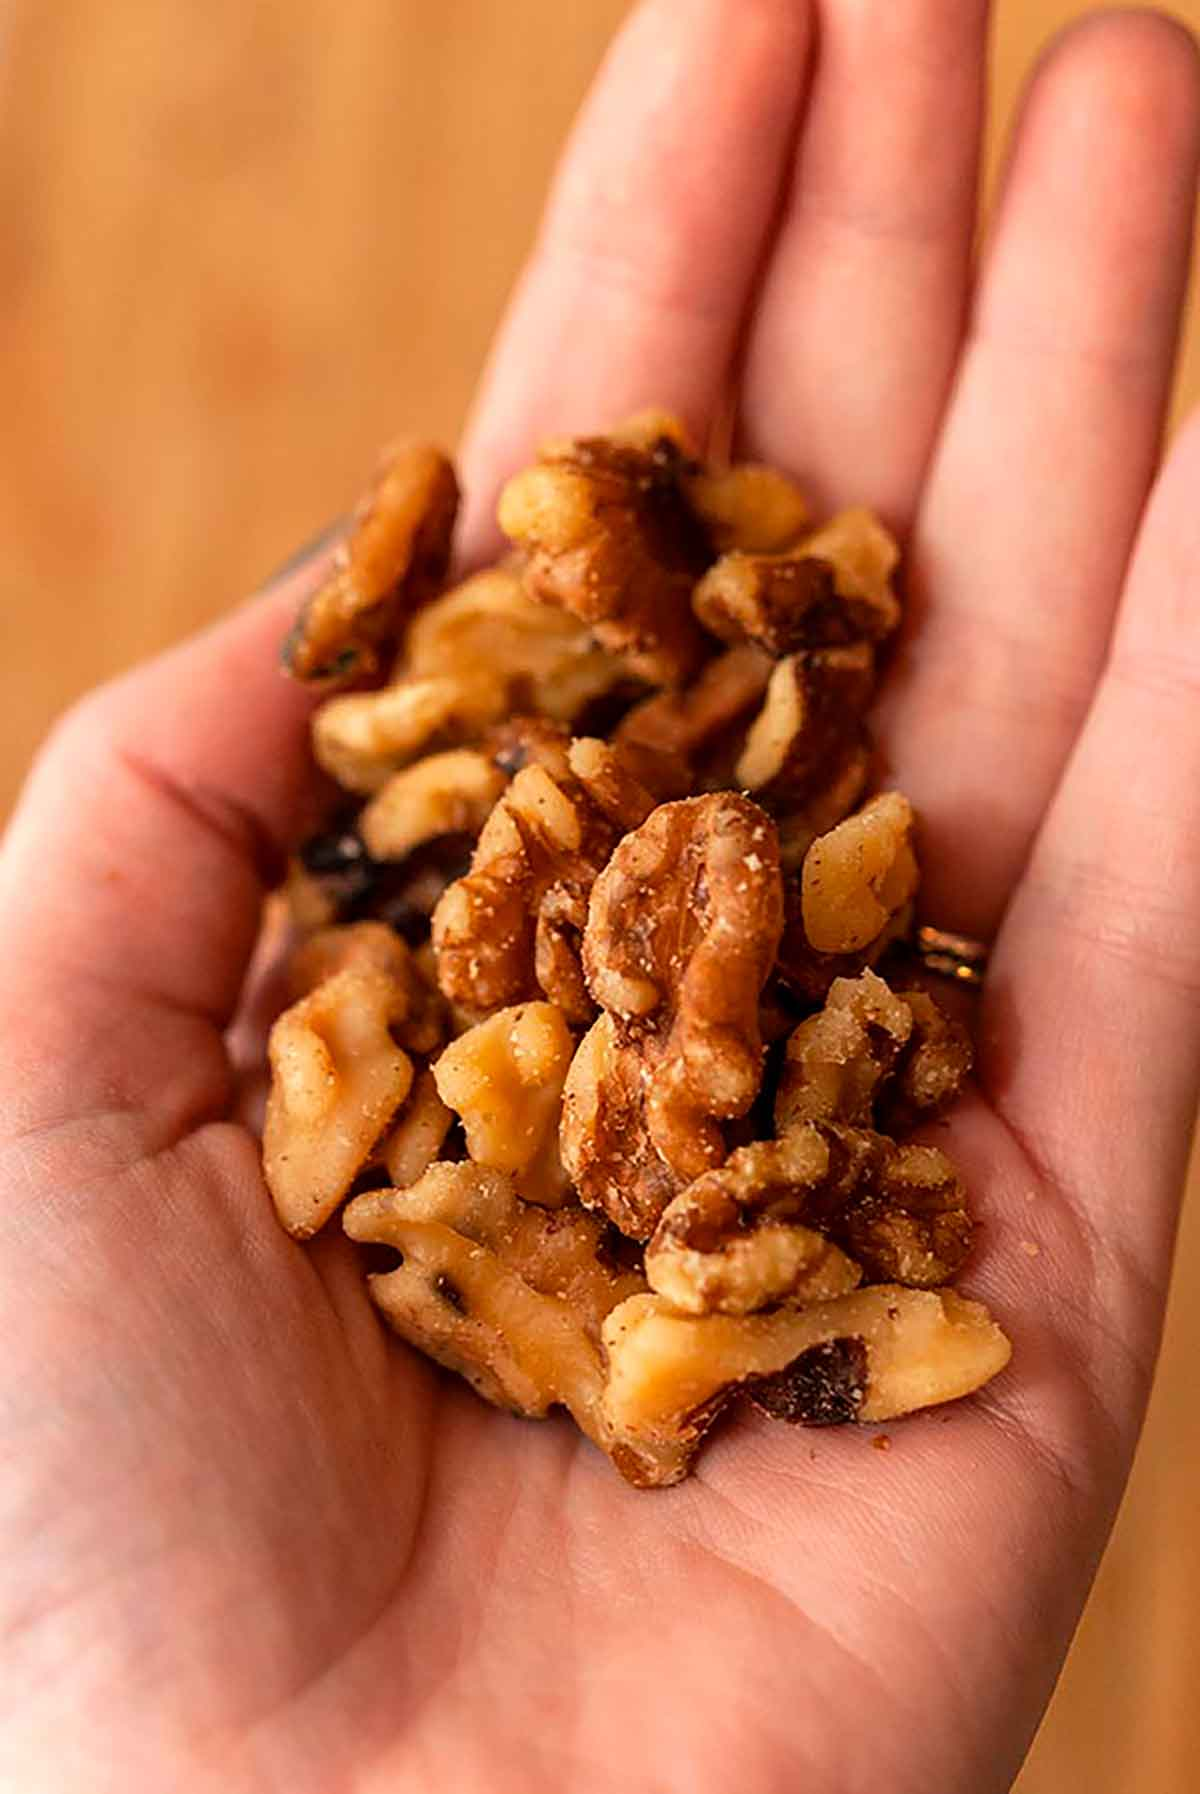 A hand holding walnuts.